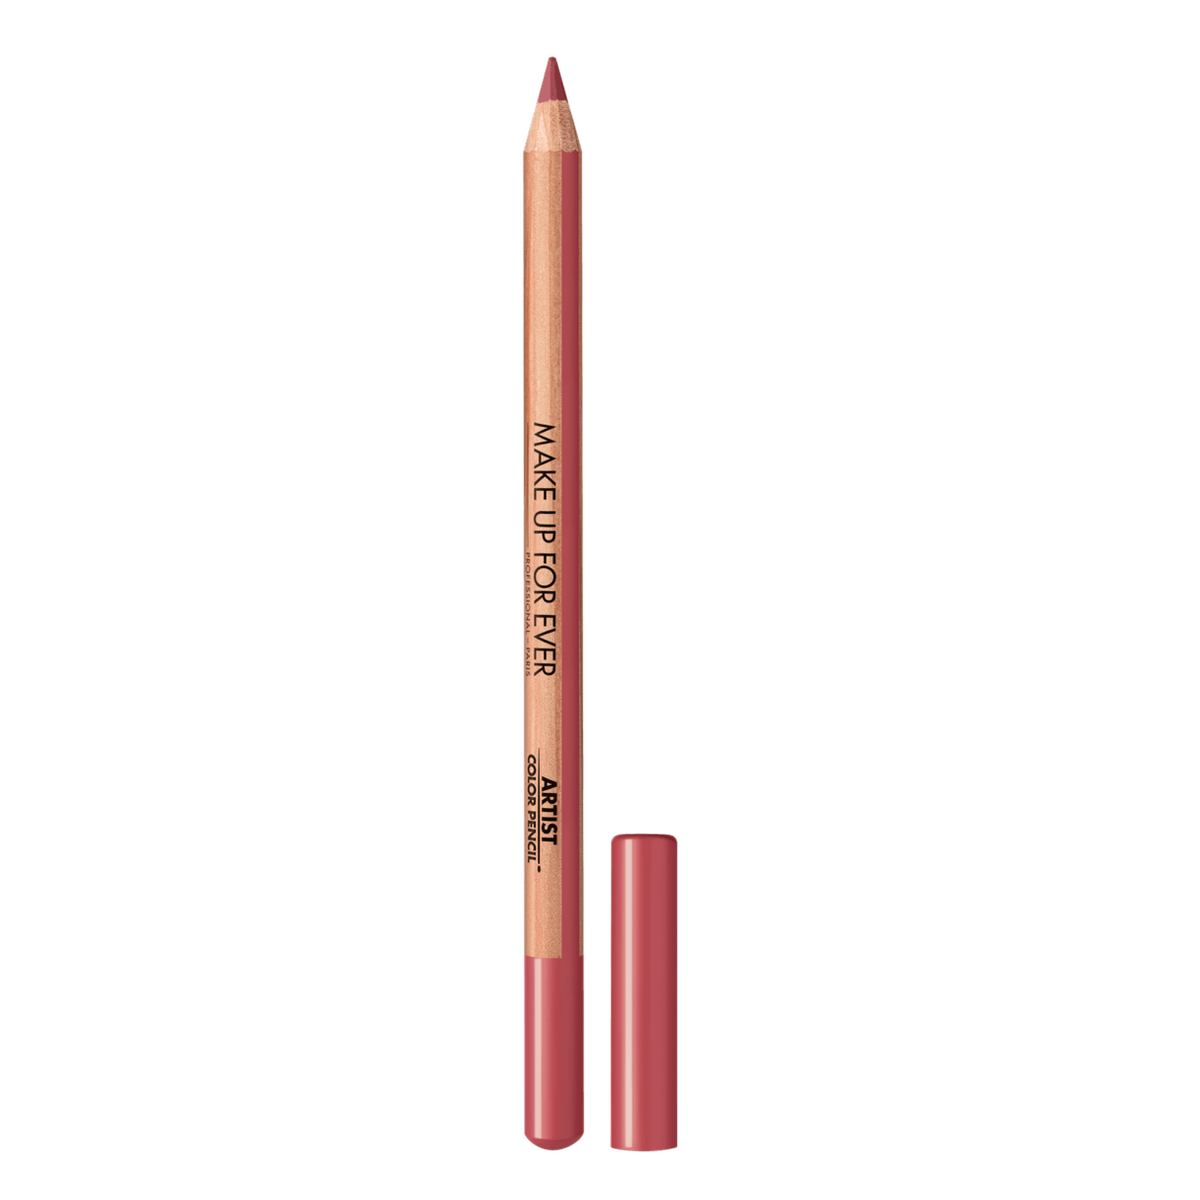 Make Up For Ever Artist Color Pencil - Eye, Lip & Brow